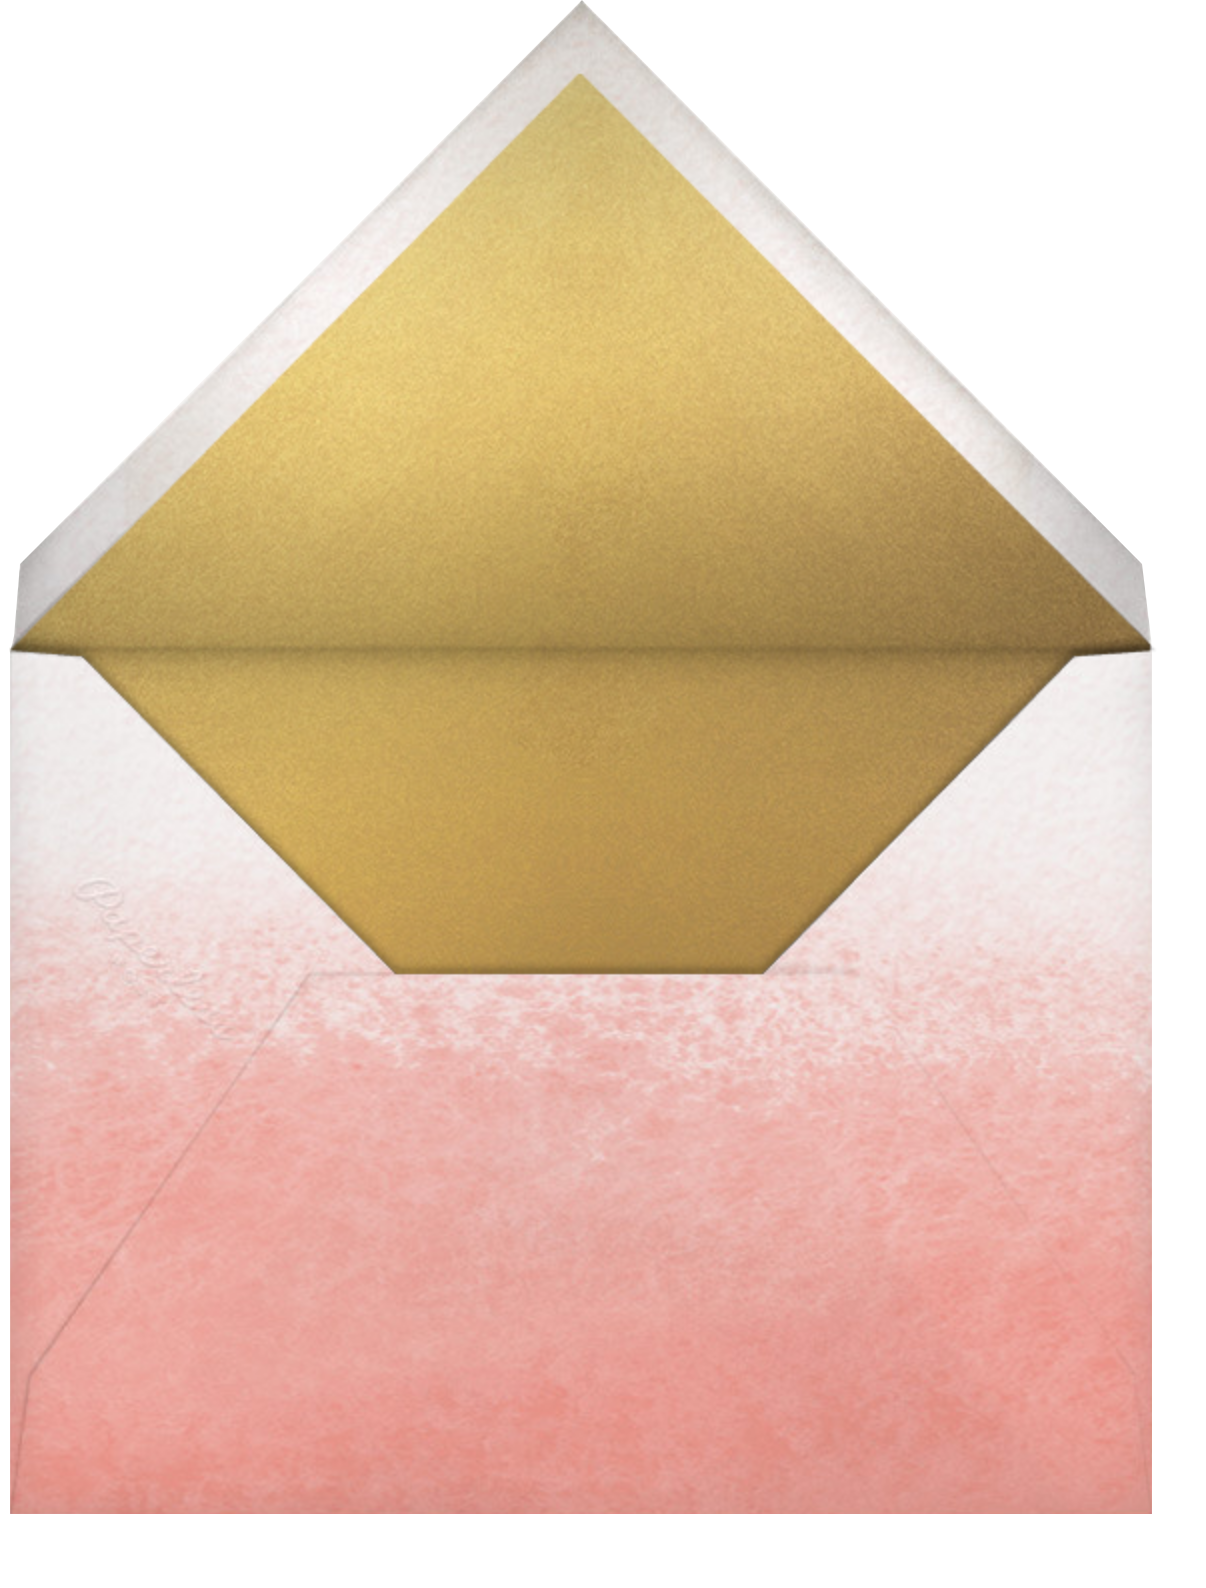 Mon Amour, Ma Vie - Paperless Post - Envelope